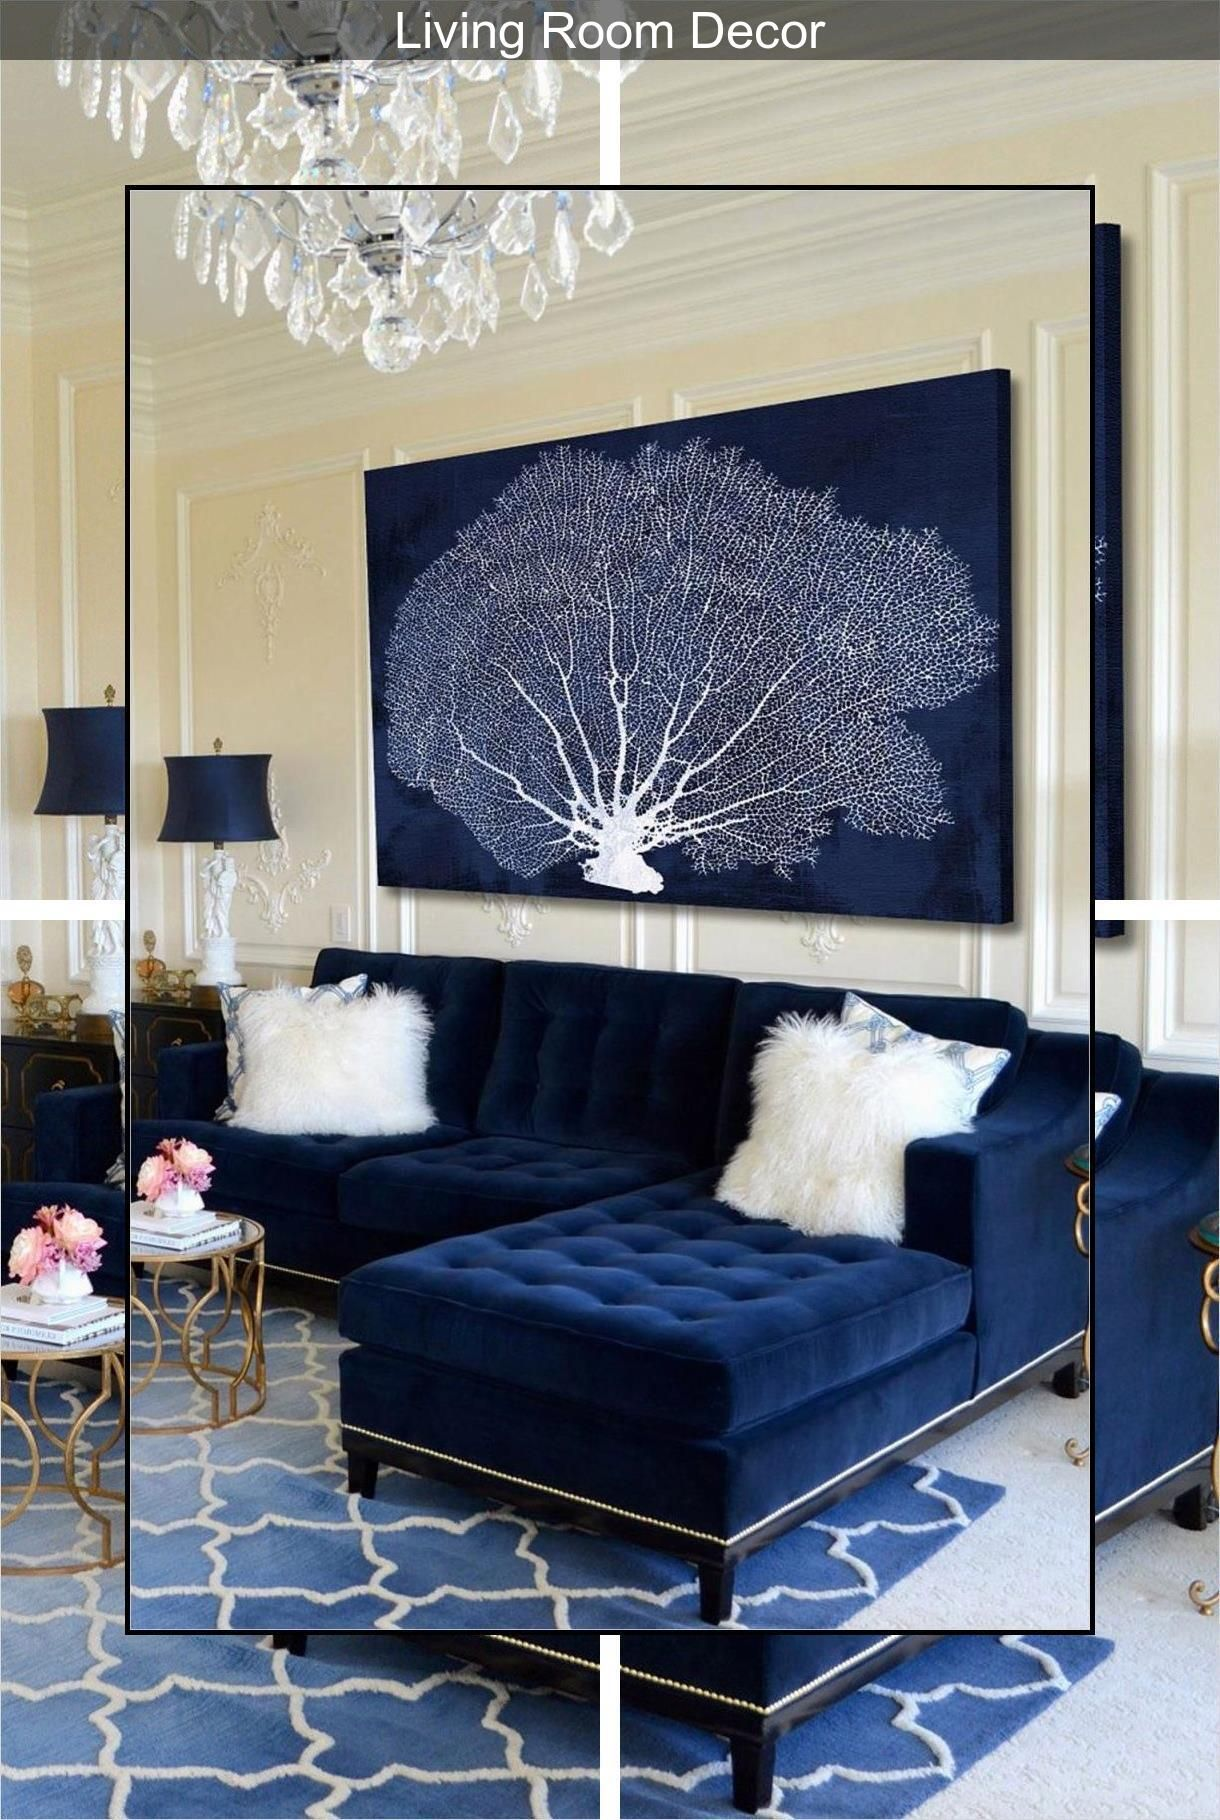 Formal Living Room New Living Room Decorating Ideas Latest Sitting Room Decoration Blue And White Living Room Blue Living Room Blue Couch Living